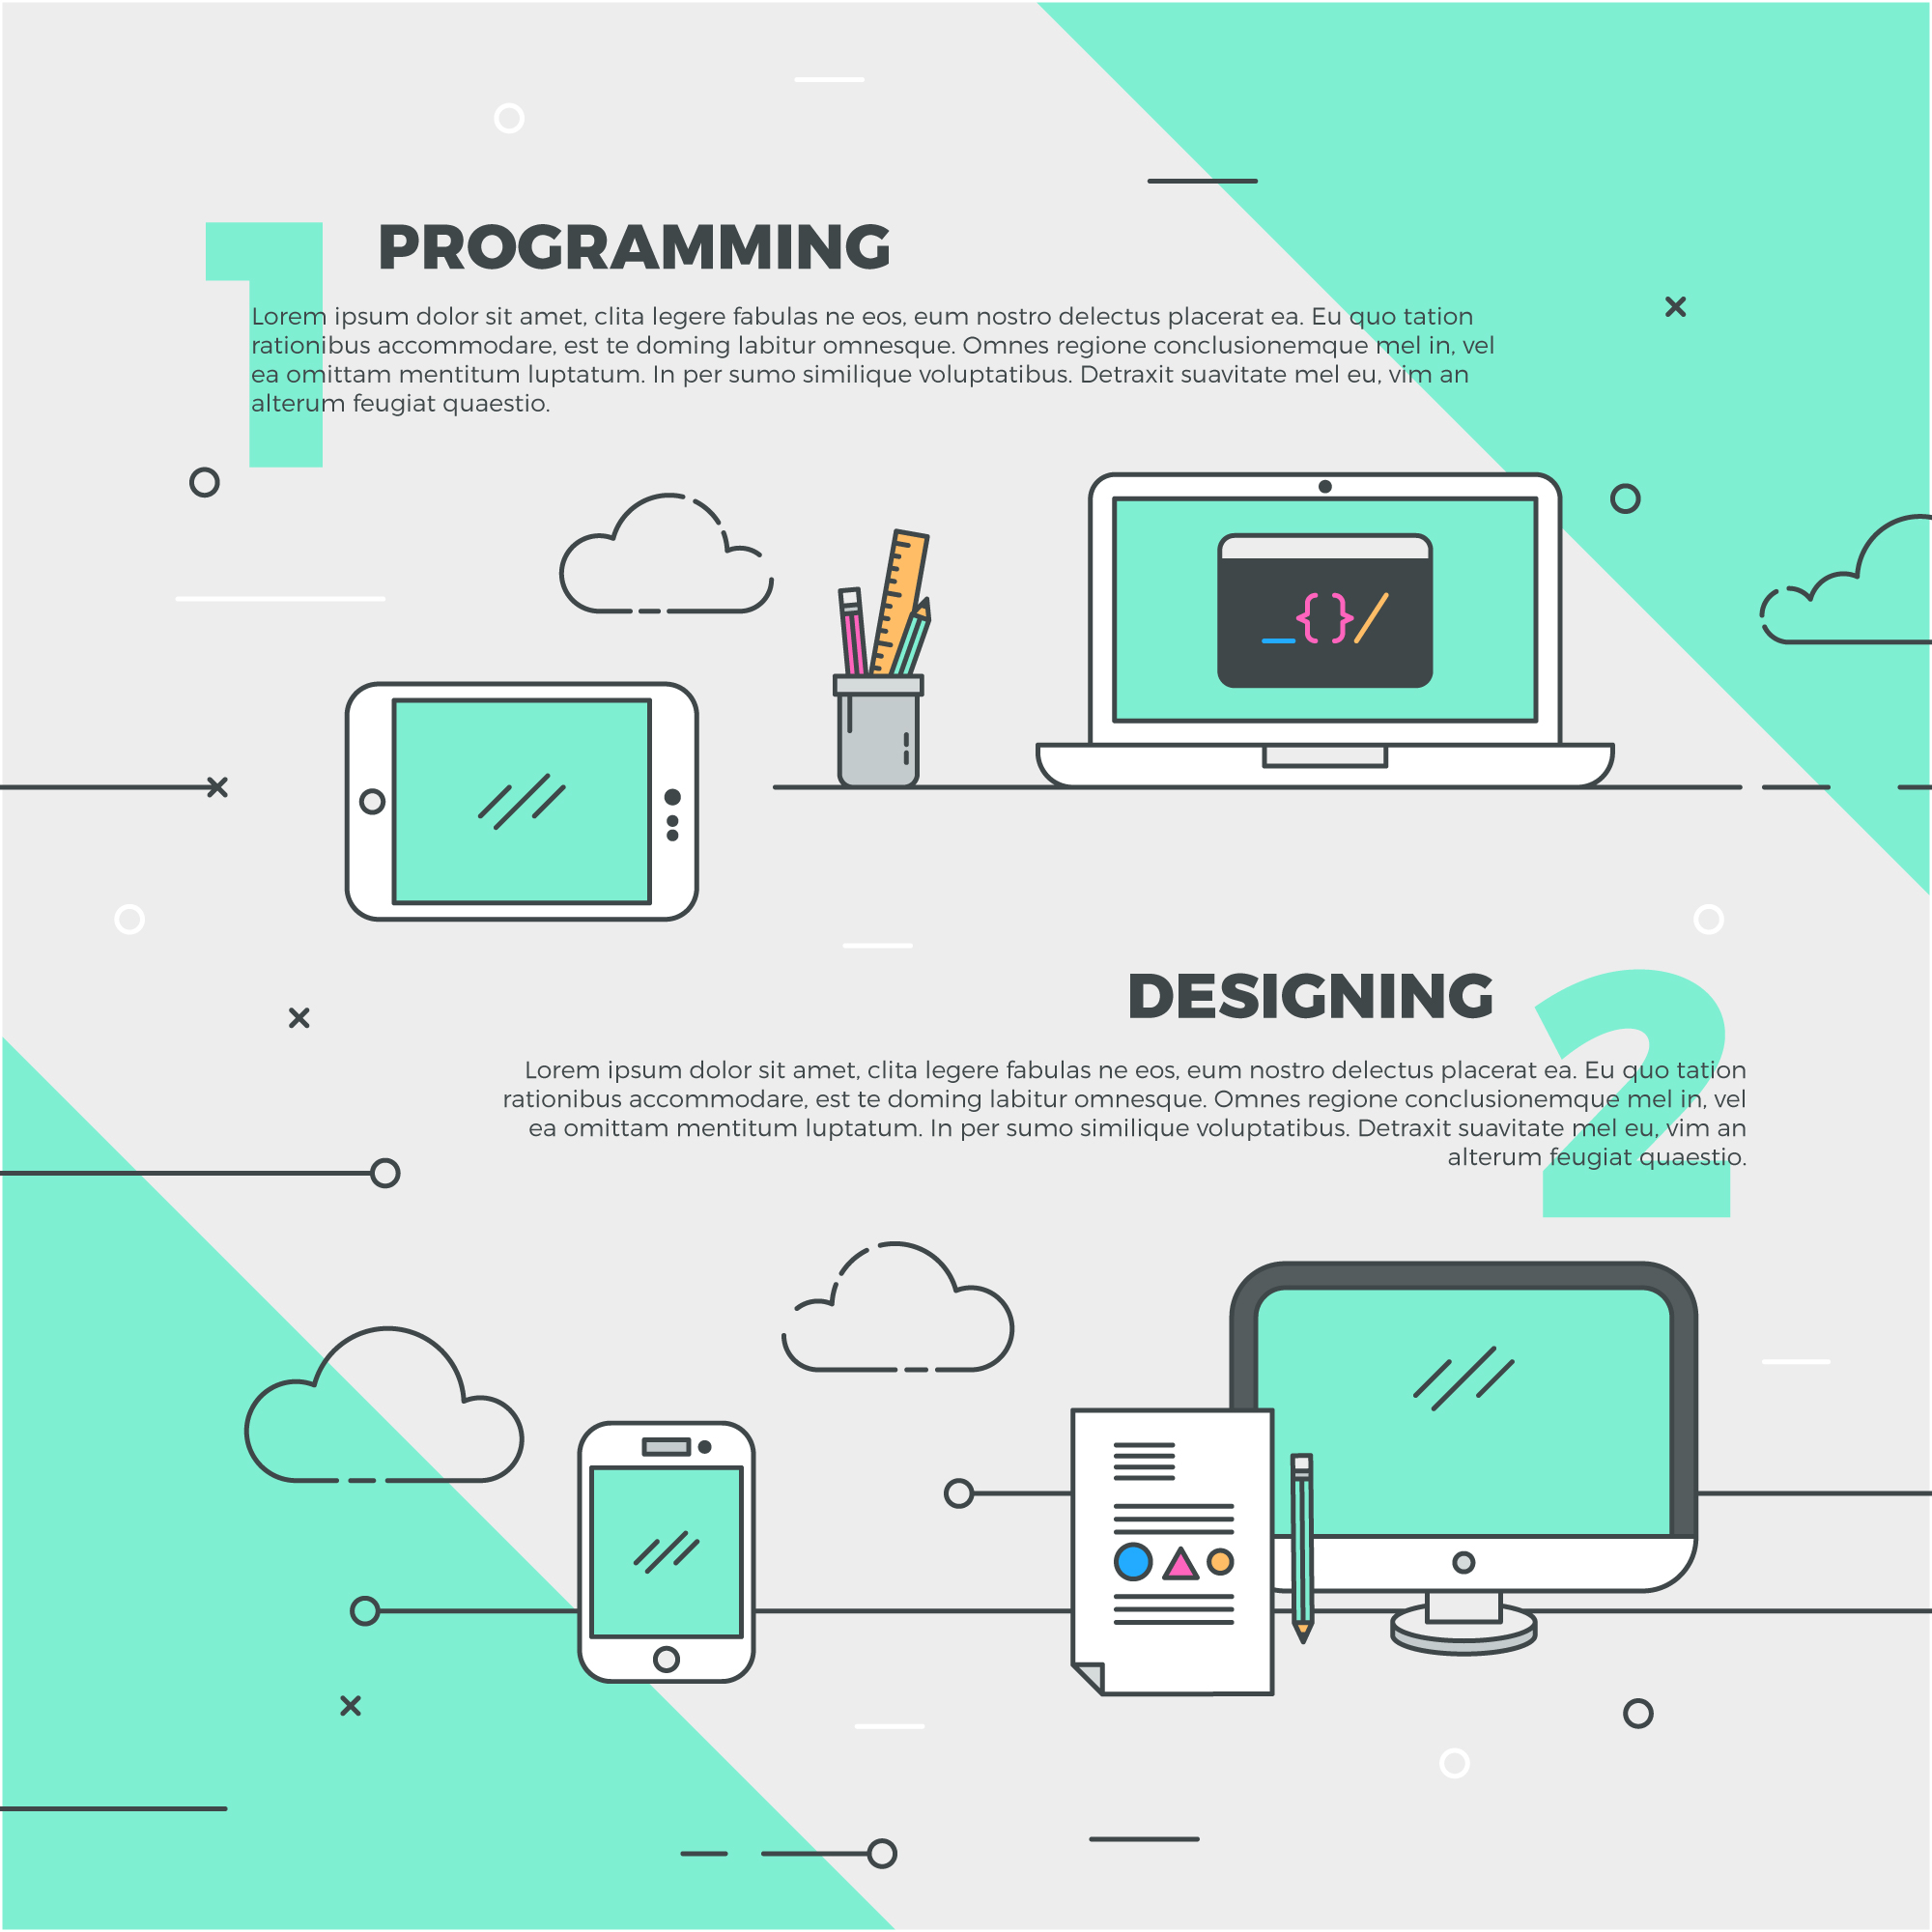 Creative design and programming illustration